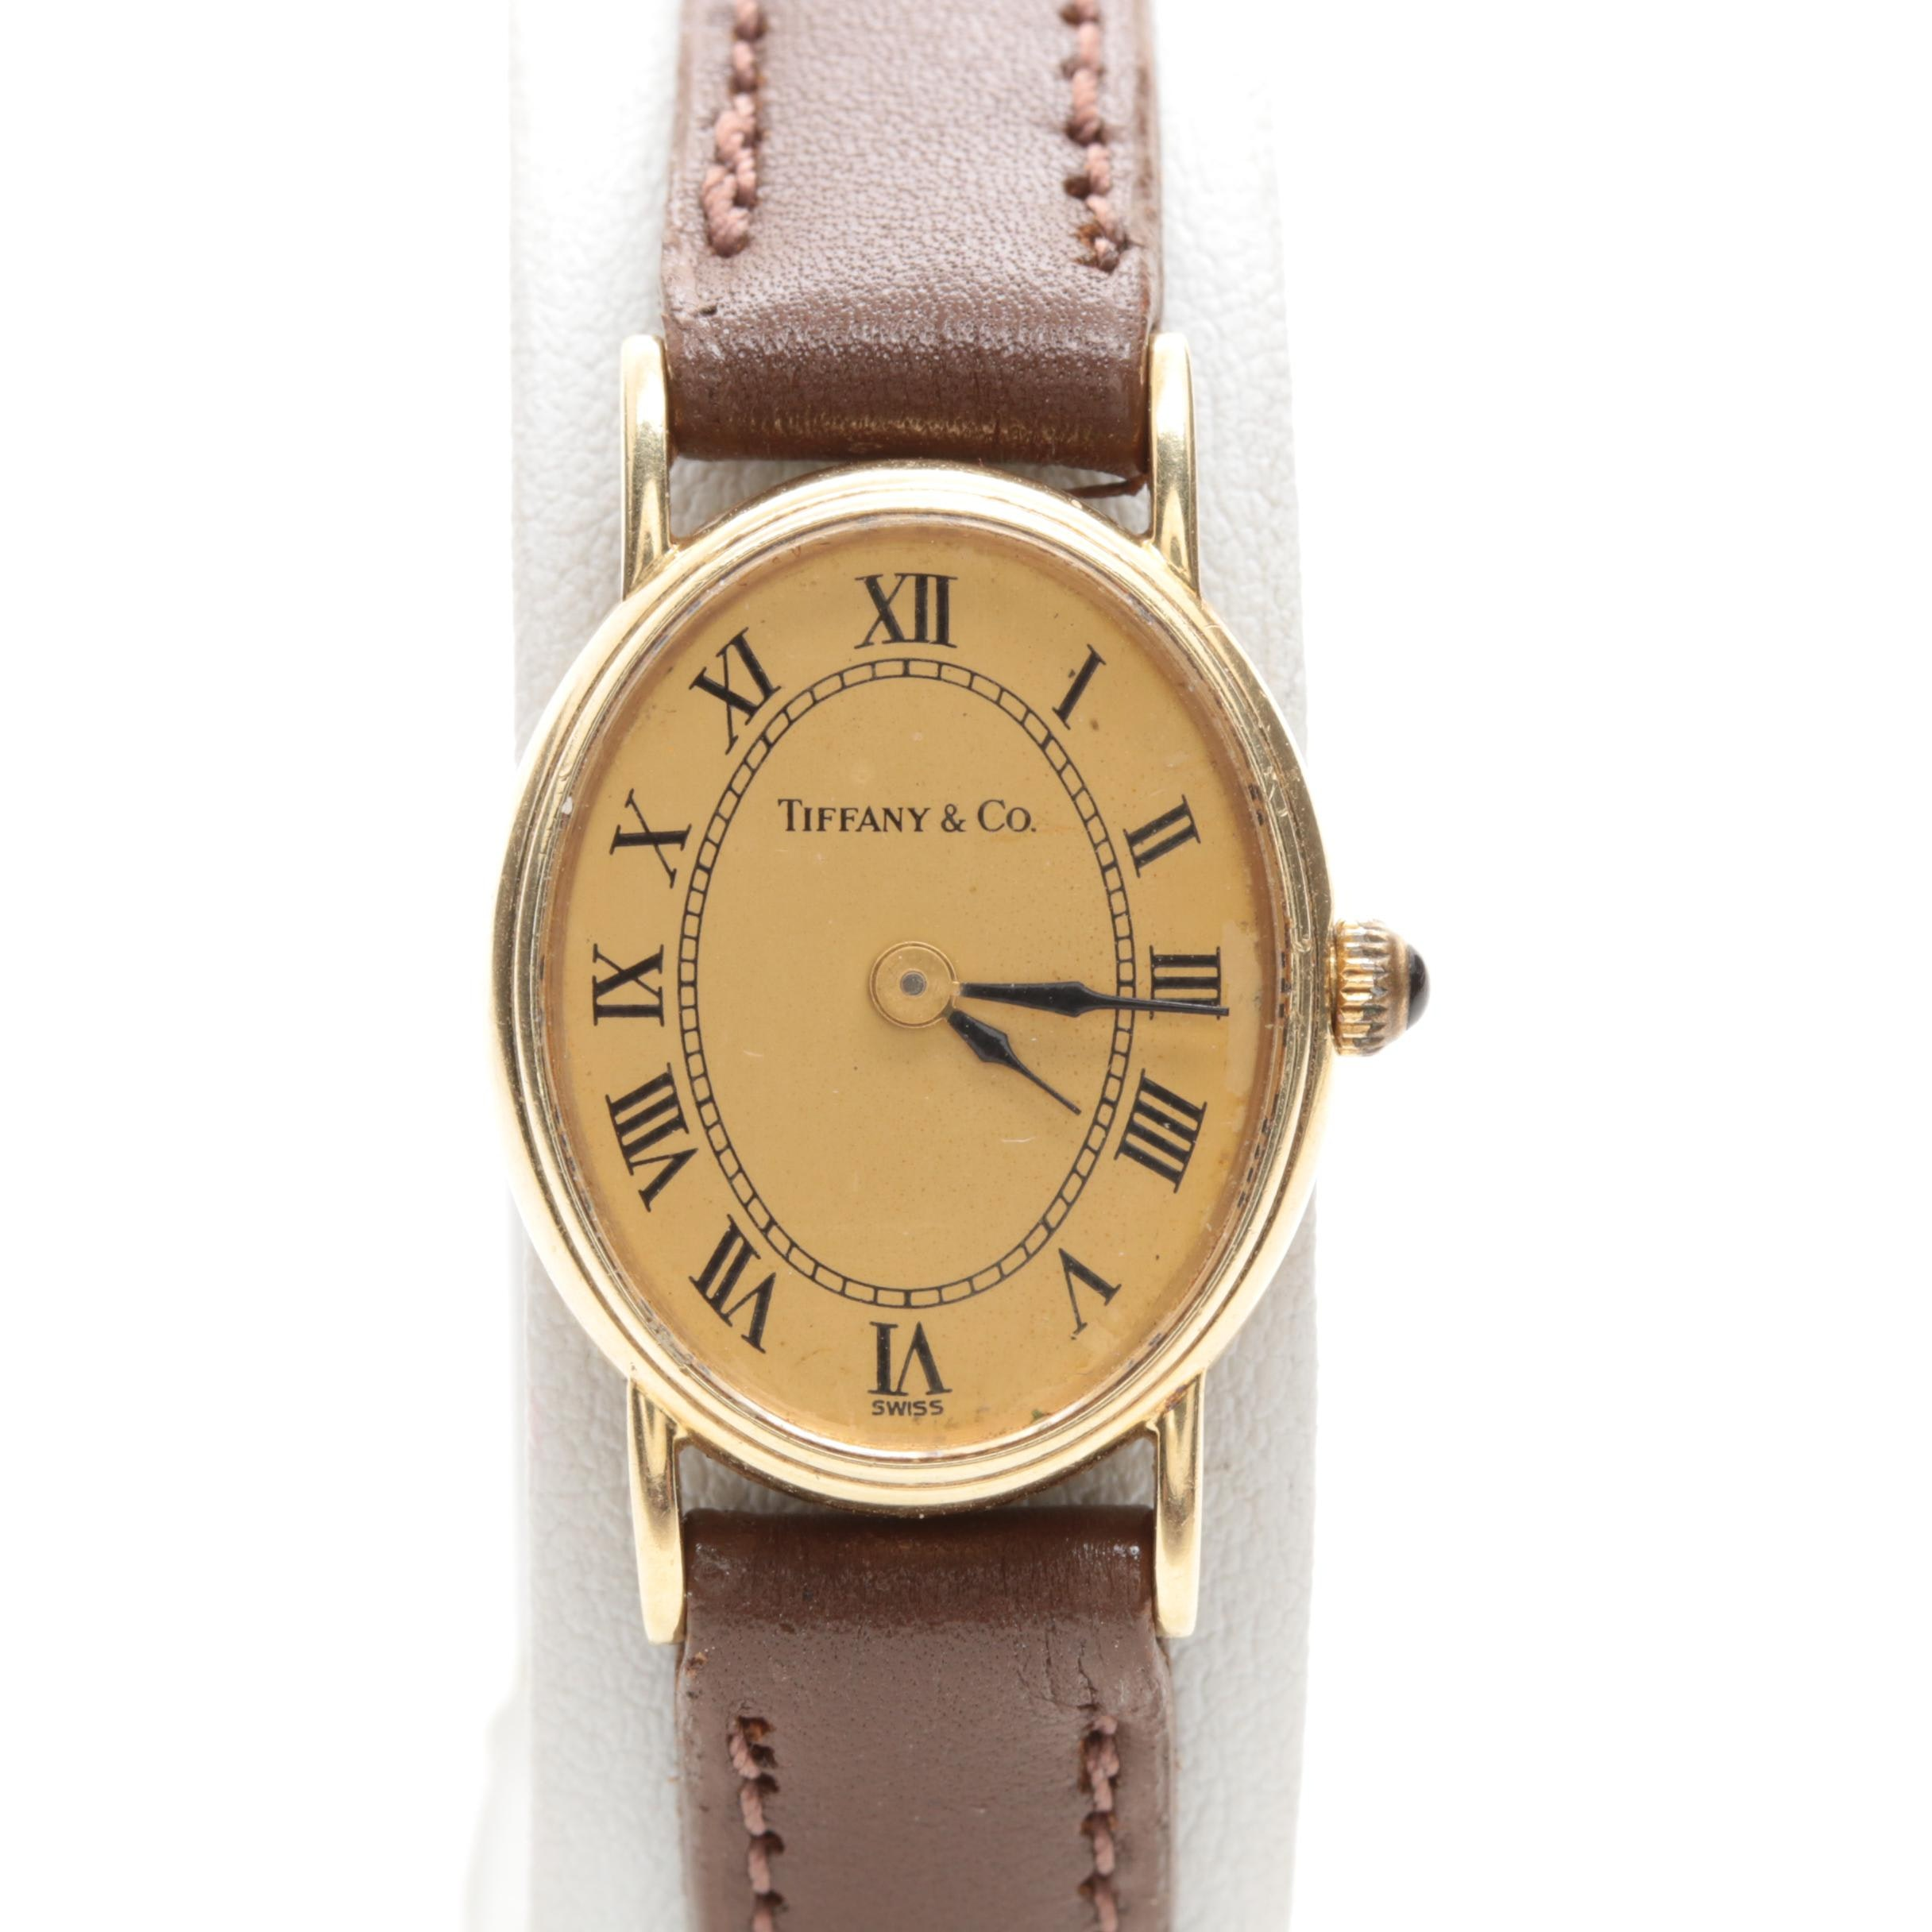 Tiffany & Co. 14K Yellow Gold Wristwatch